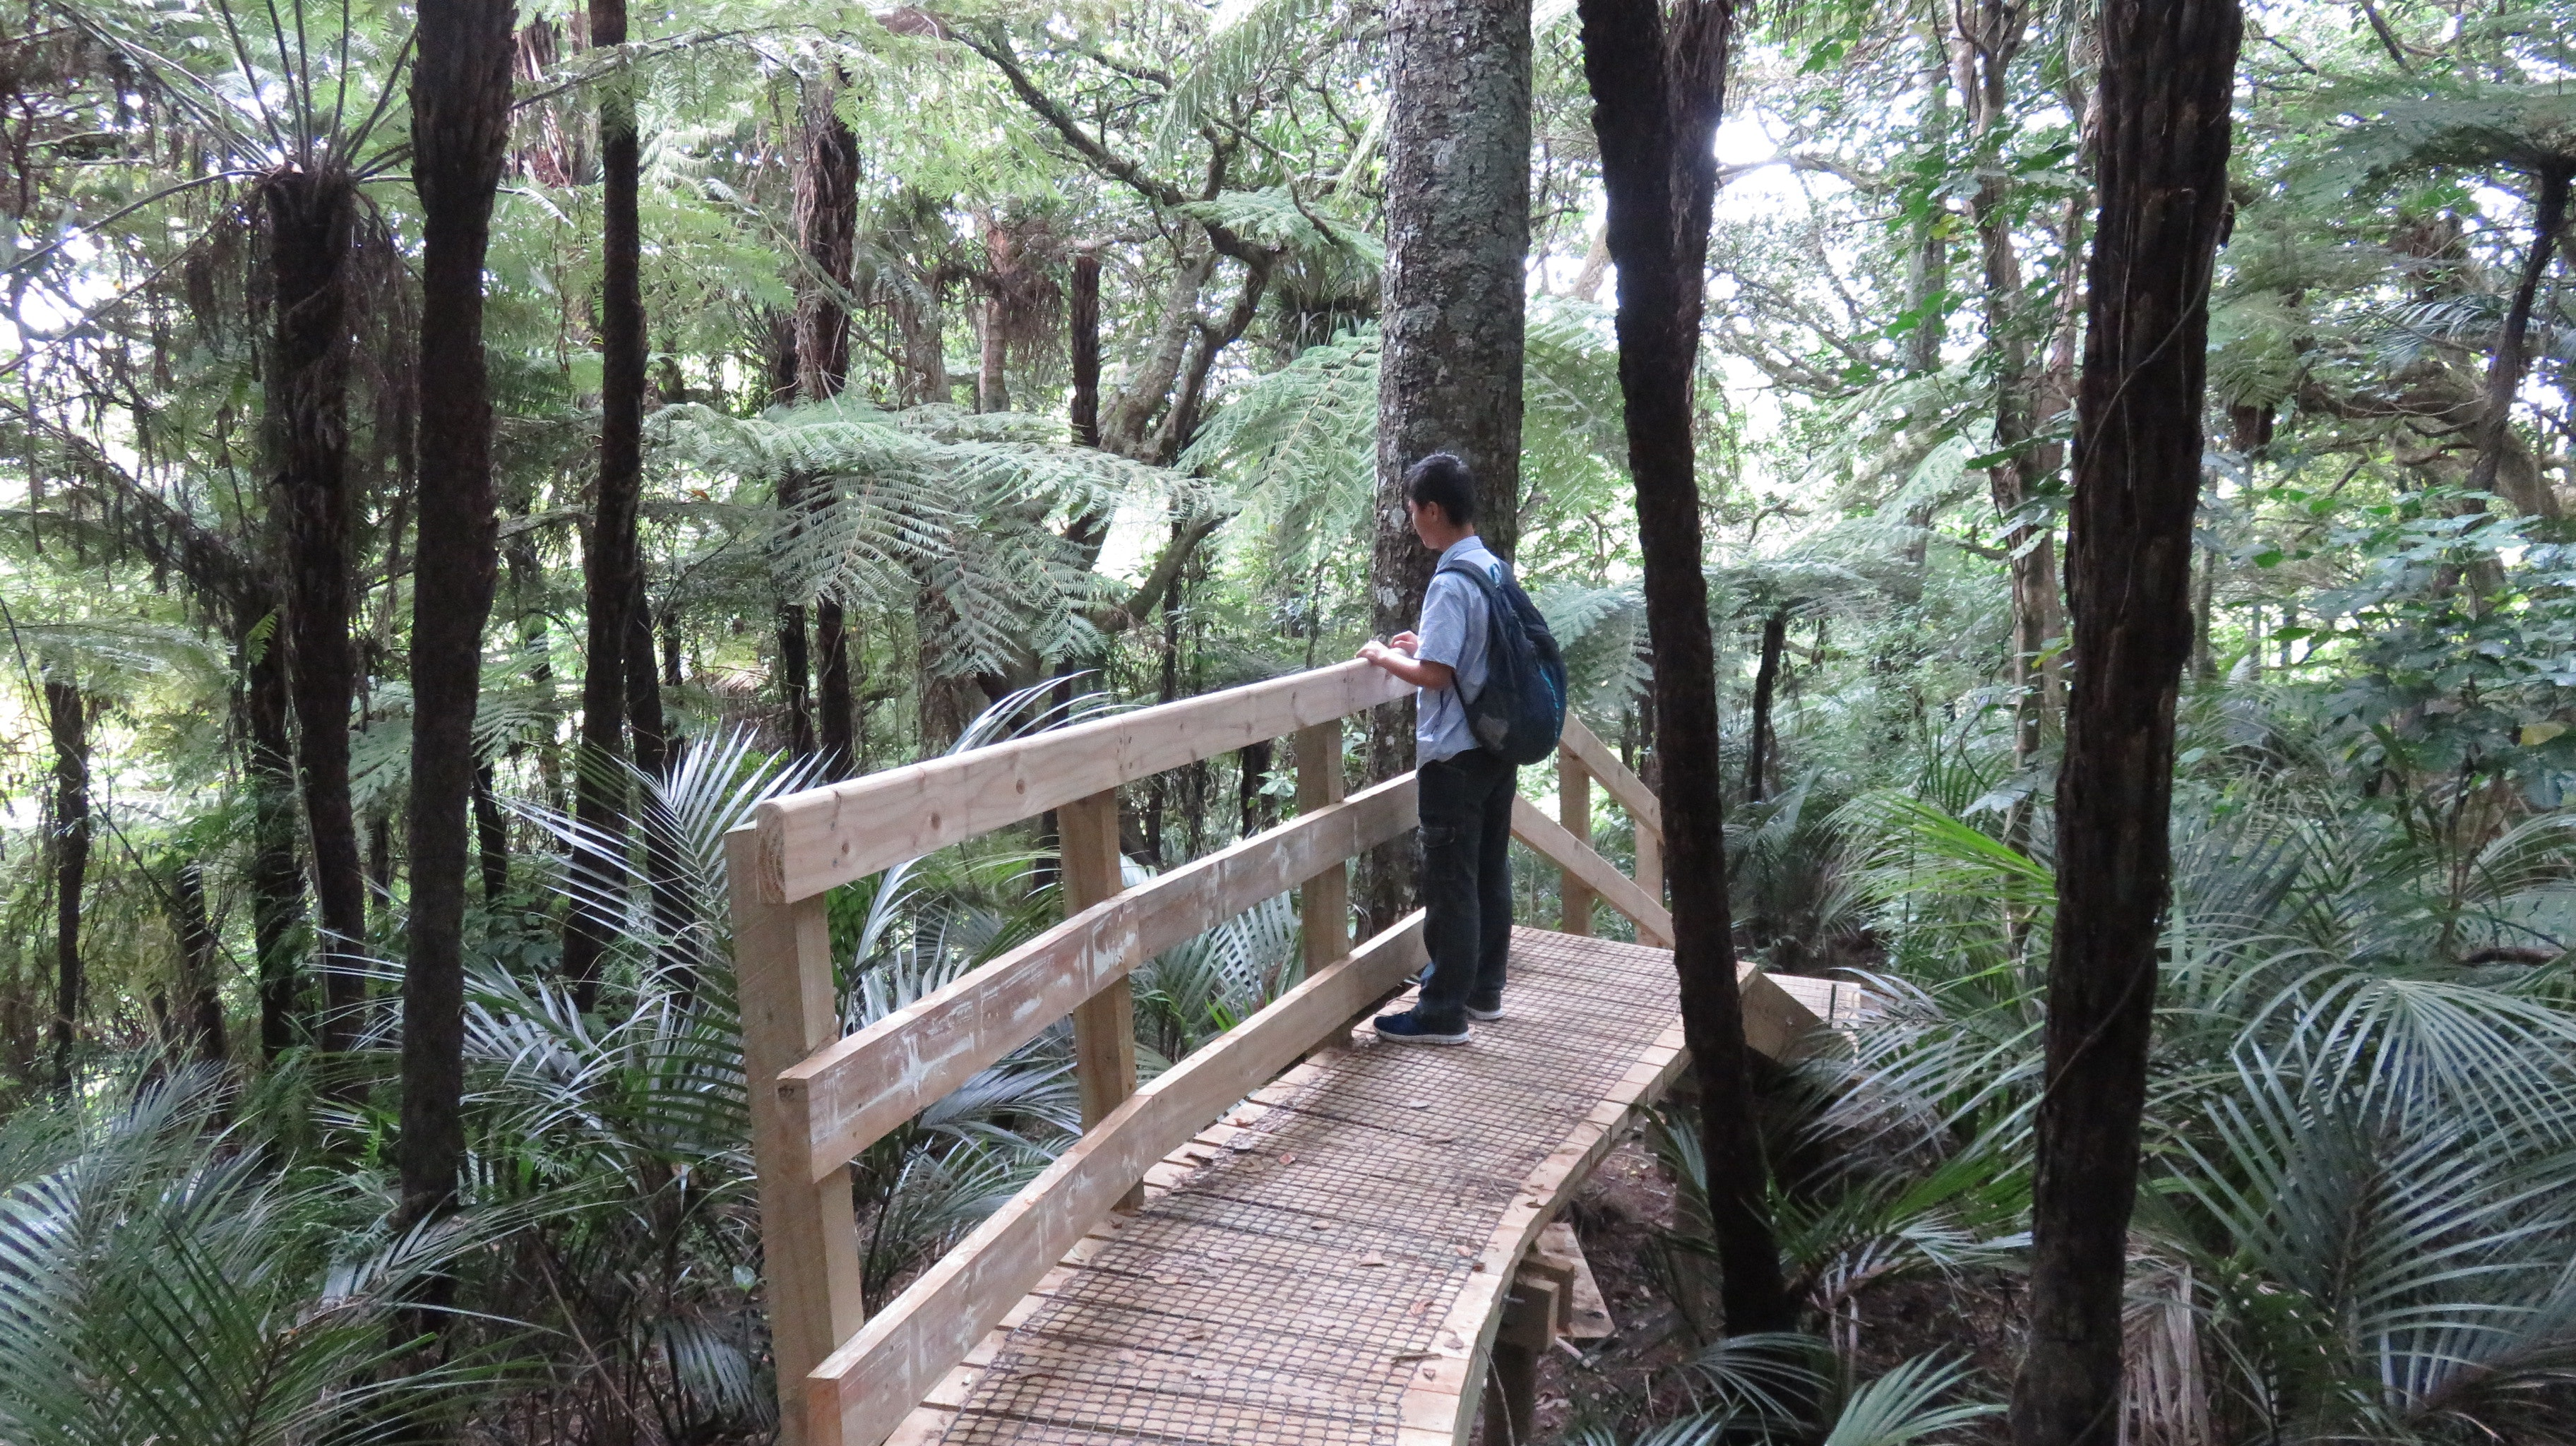 Person on Wooden Bridge Surrounded By Trees, Standing, Travel, Plants, Outdoors, HQ Photo